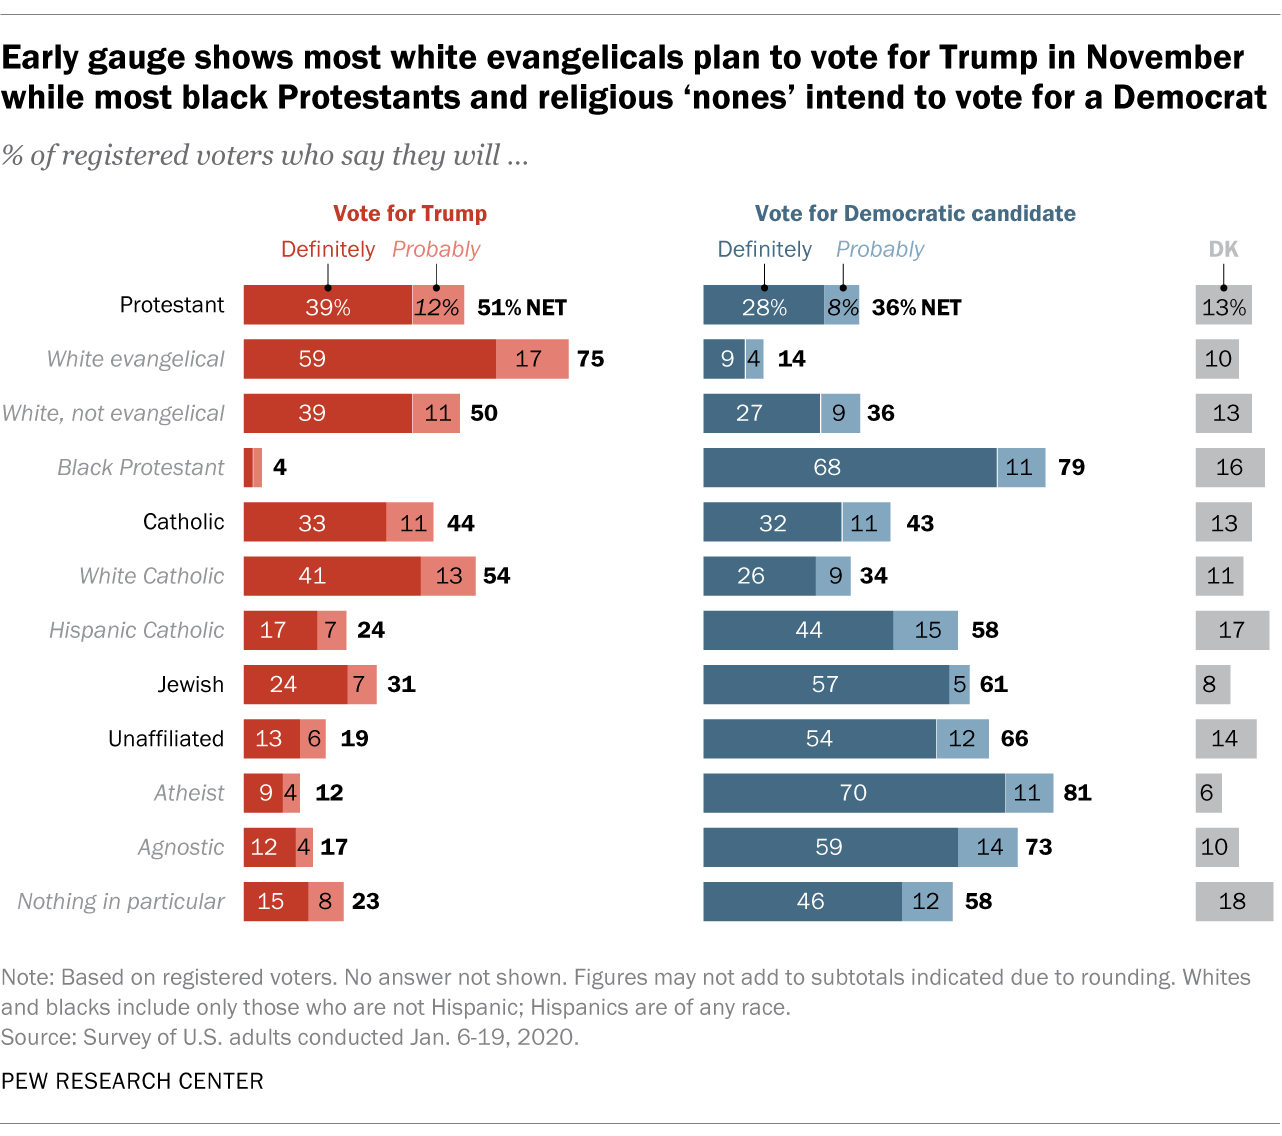 Early gauge shows most white evangelicals plan to vote for Trump in November while most black Protestants and religious 'nones' intend to vote for a Democrat